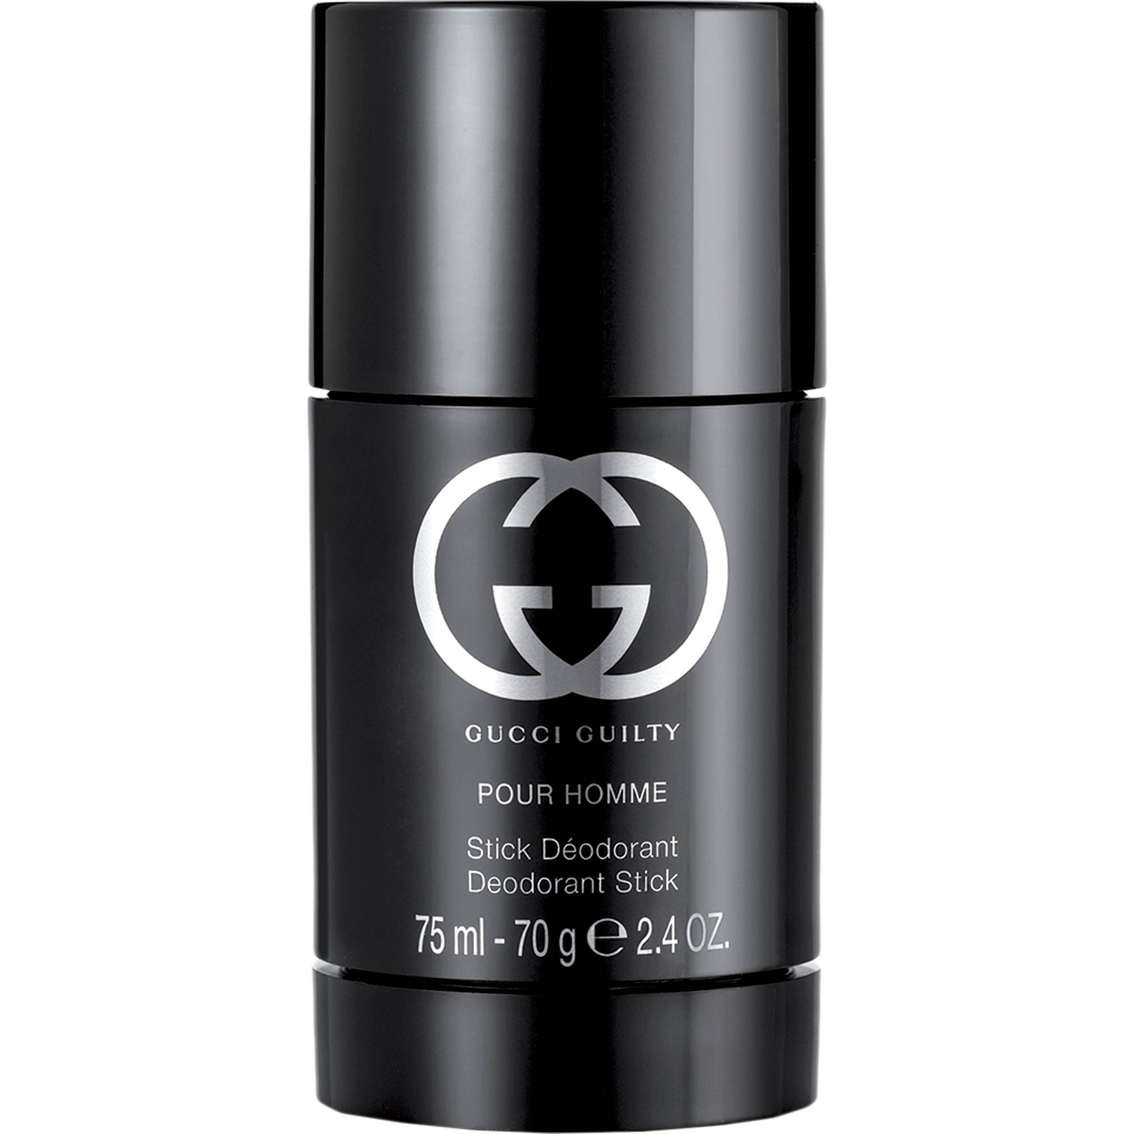 Gucci Guilty For Men Deodorant Body Hair Care Beauty Health Gulity Black